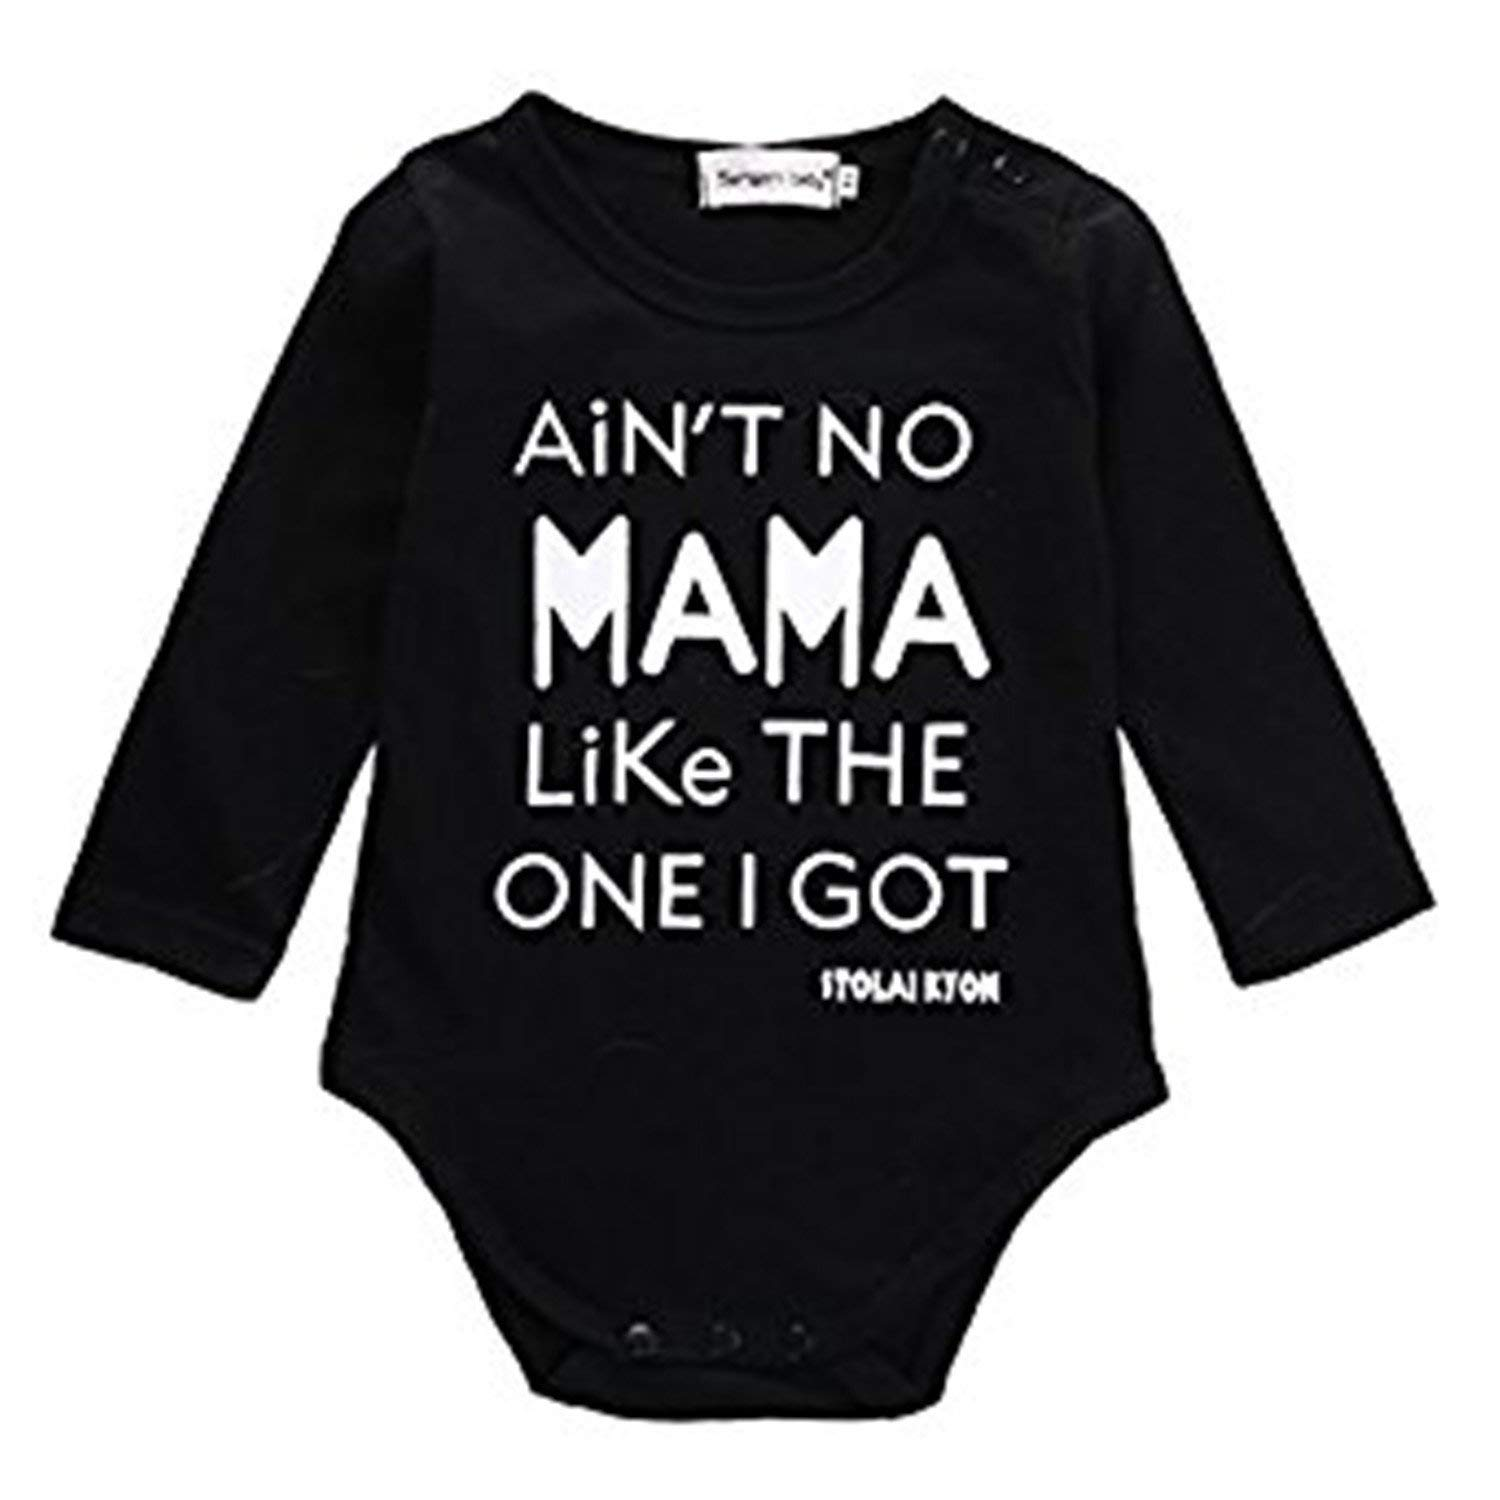 c411c0cb6 Get Quotations · Newborn Infant Baby Boy Girl Long Sleeve Romper Jumpsuit  Set Coming Home Outfits